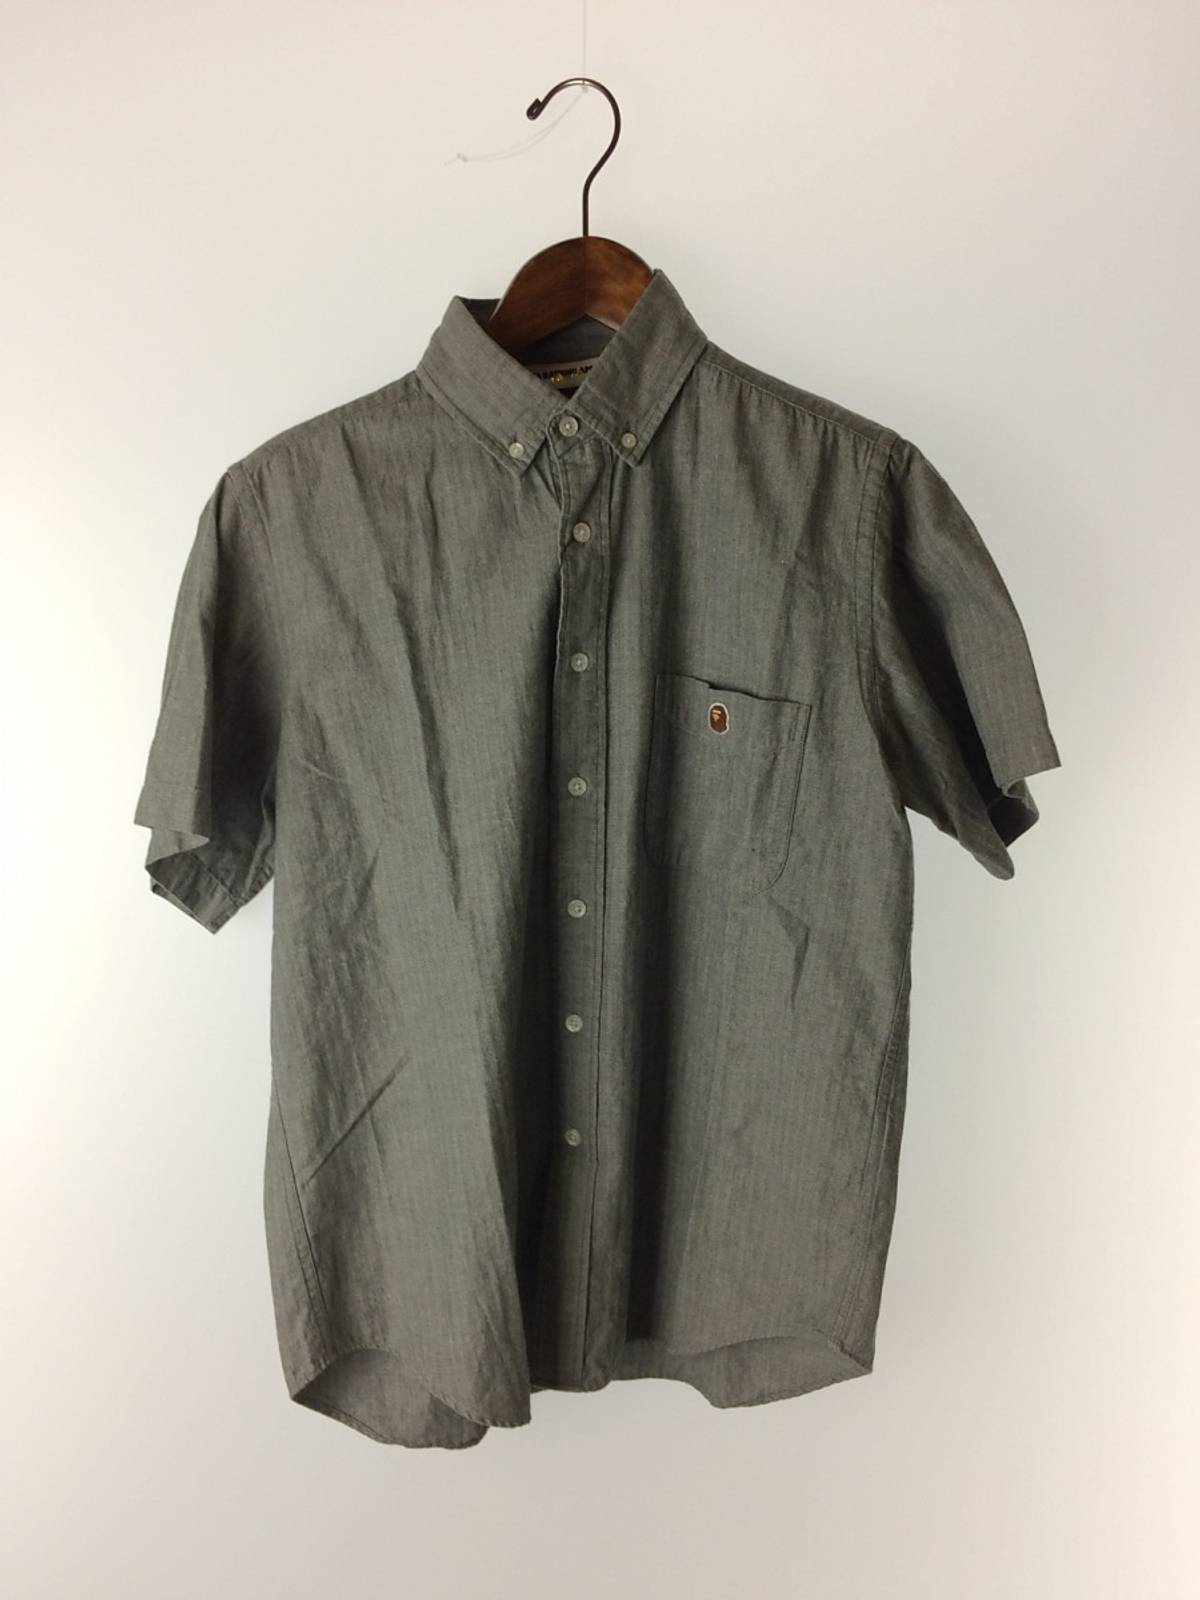 8a2b10a6 Bape Shirt Gray Plain Button Down Cotton Short Sleeve | Grailed